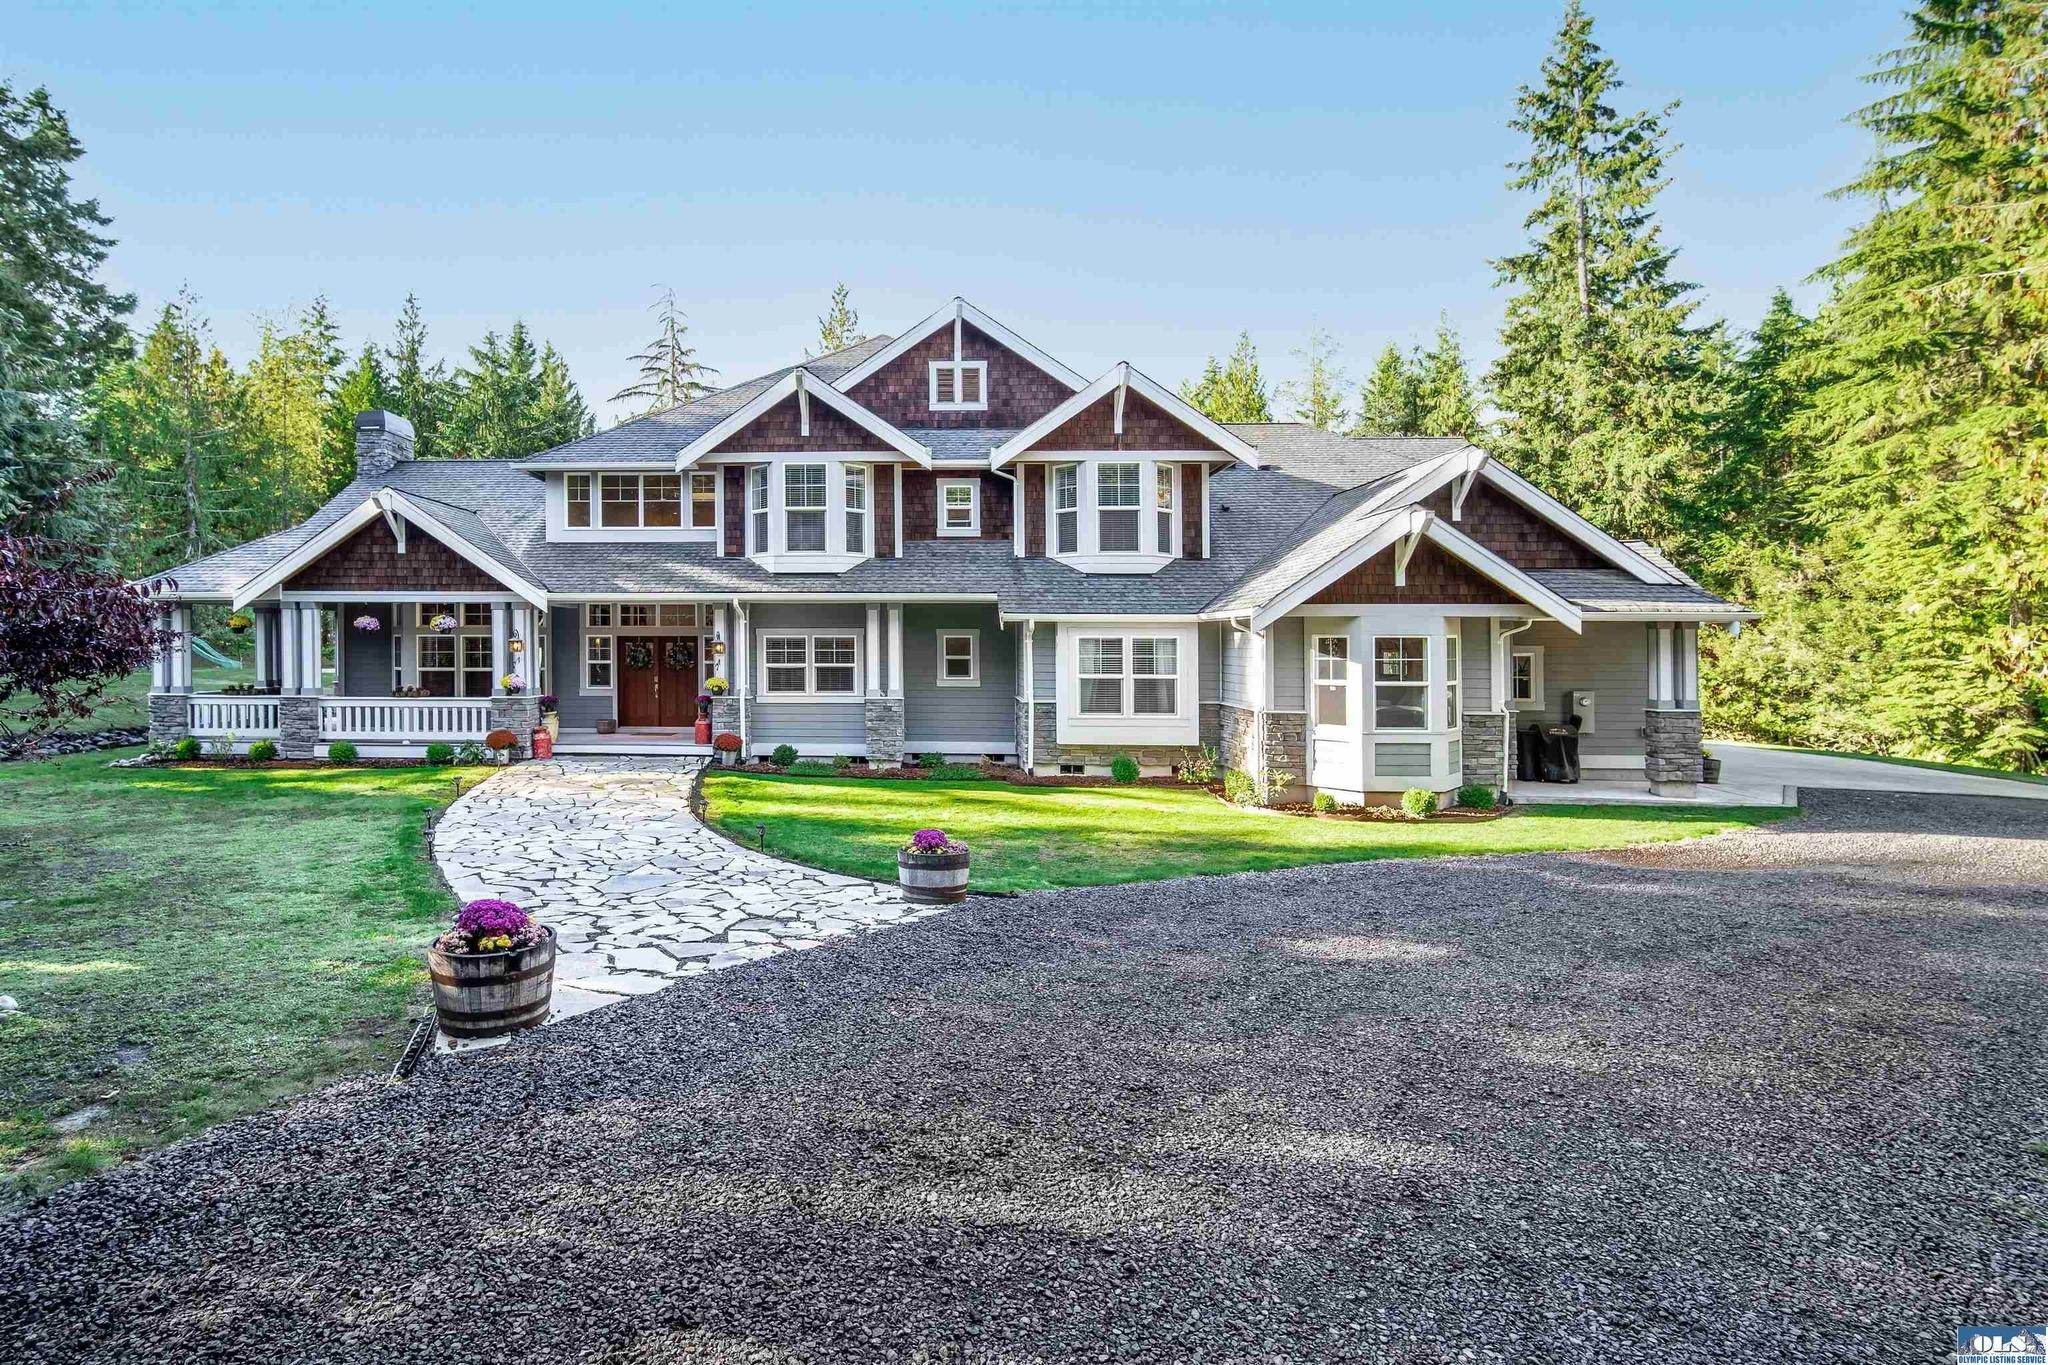 Luxurious 5-Bedroom House In Port Angeles